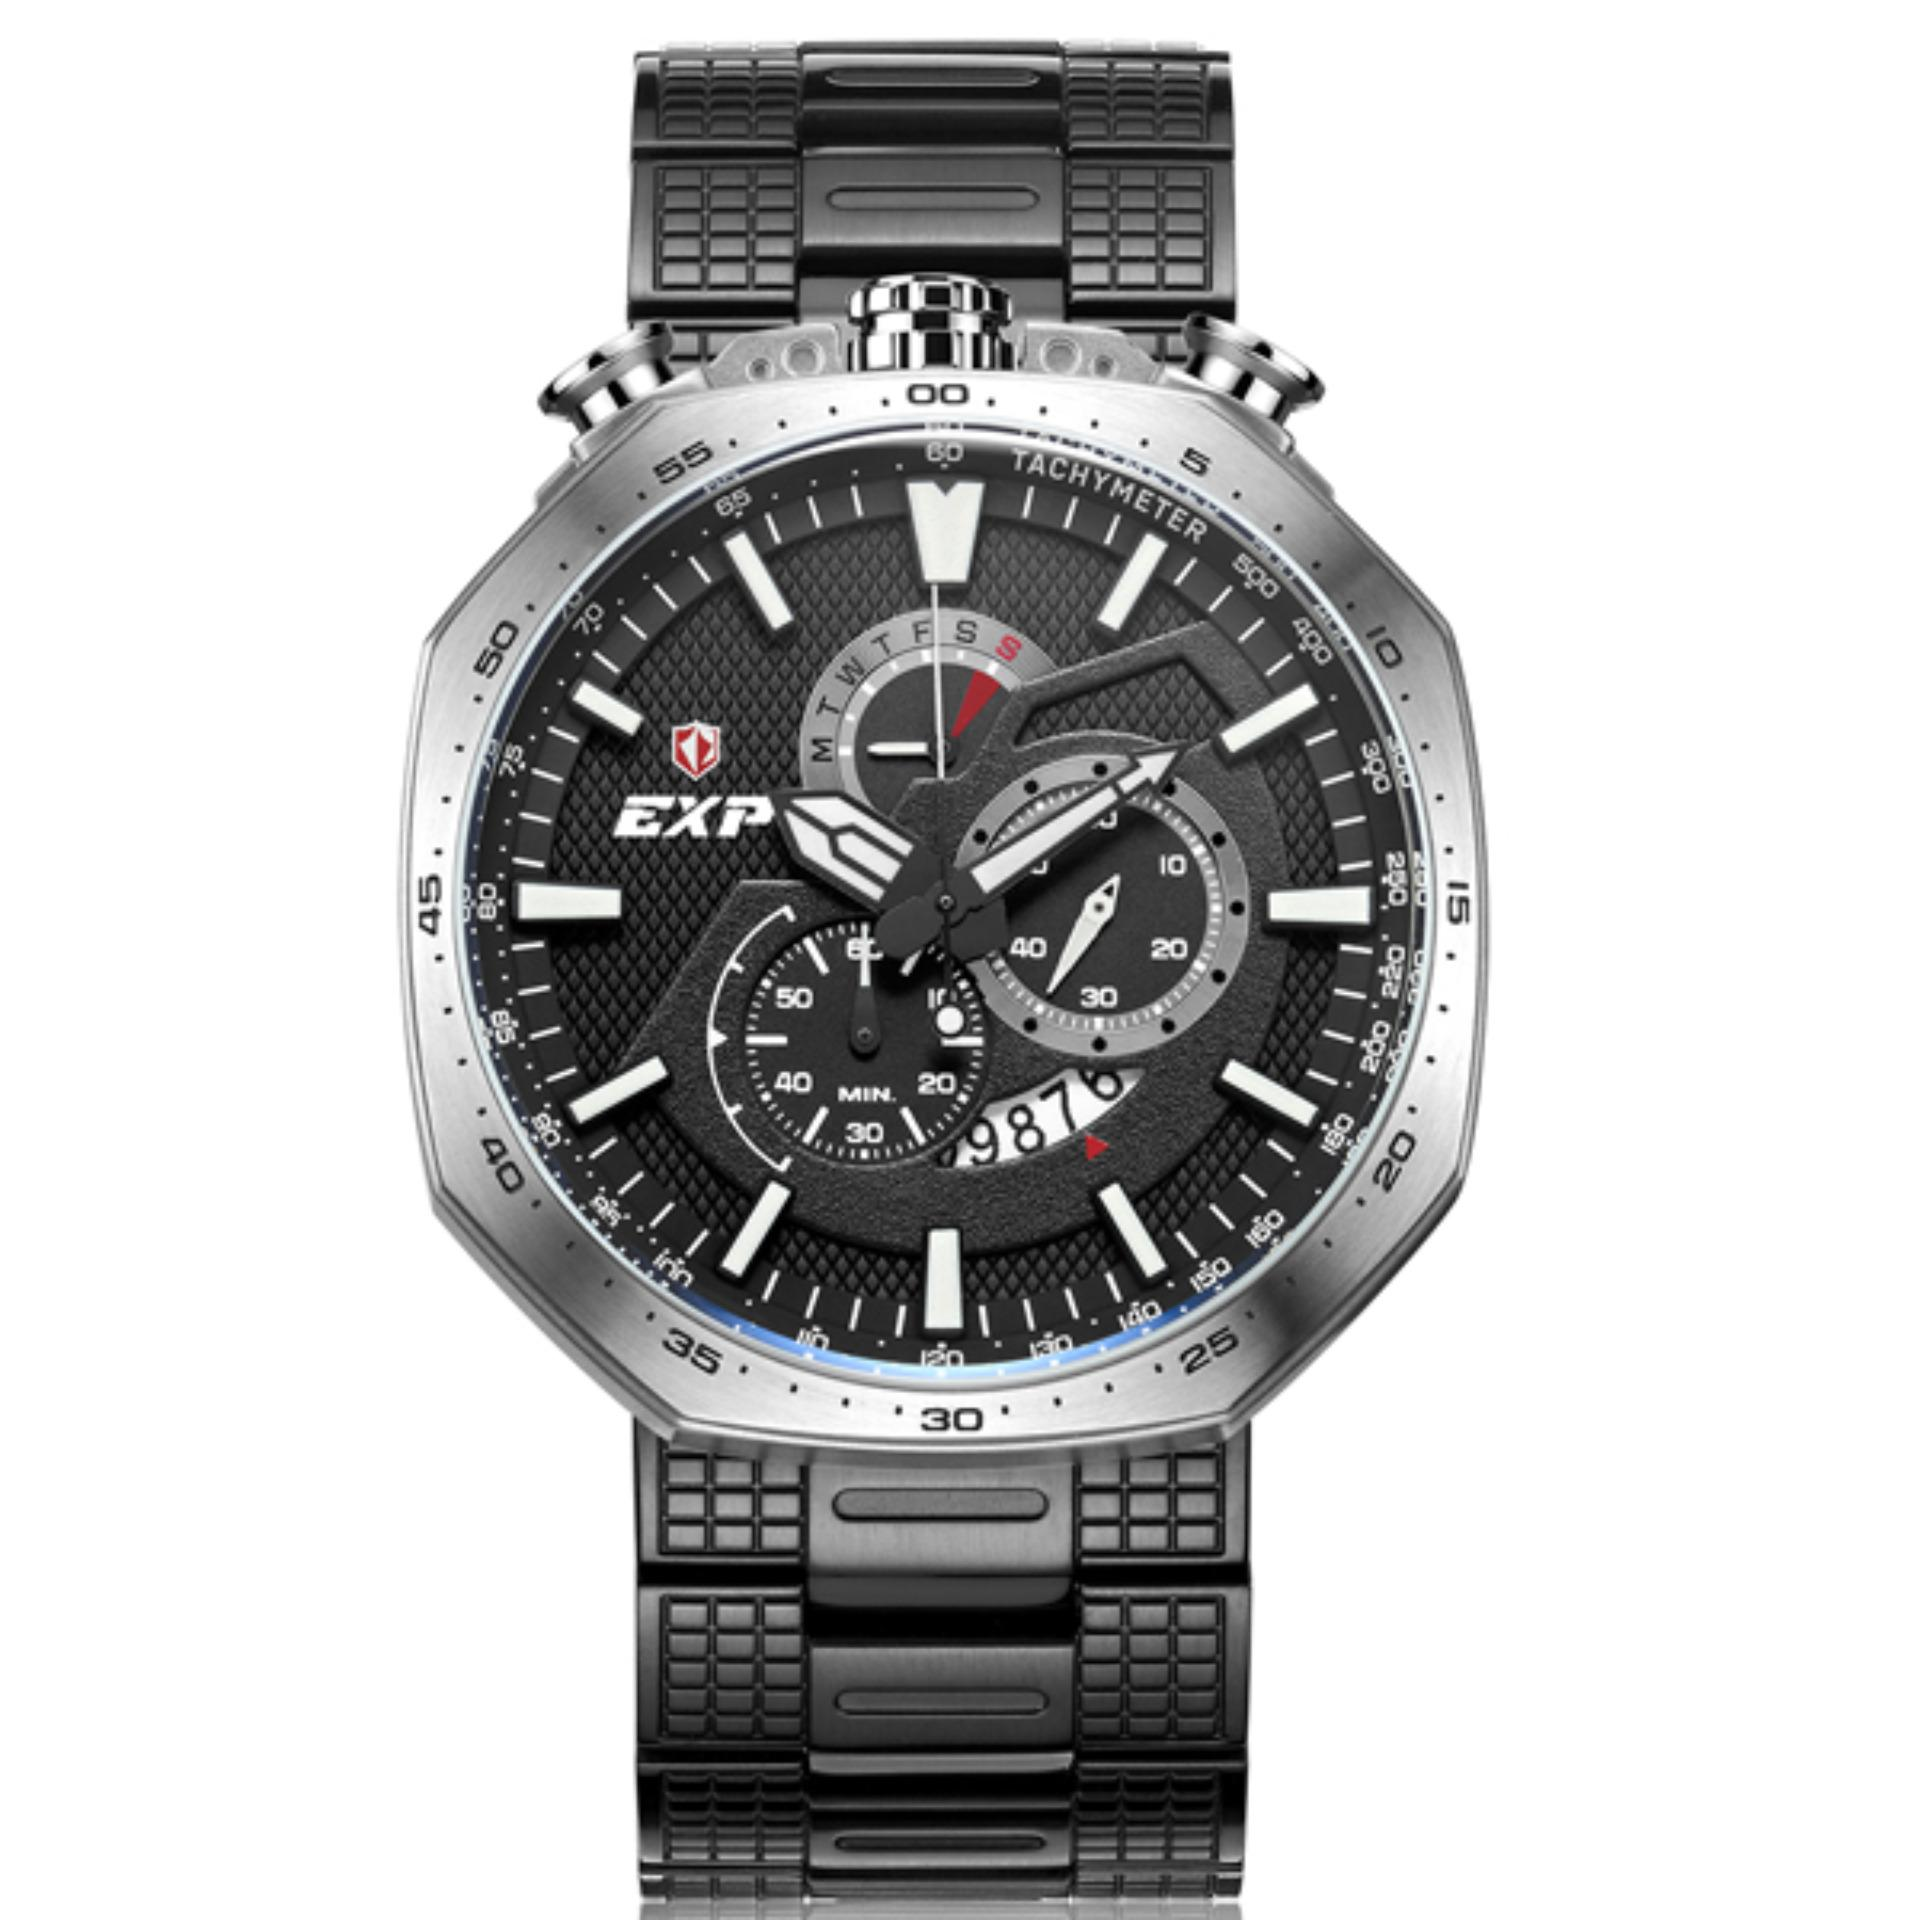 Expedition Jam Tangan Pria E6385m Chronograph Black E6657 Exp6745mc Silver Stainless Steel